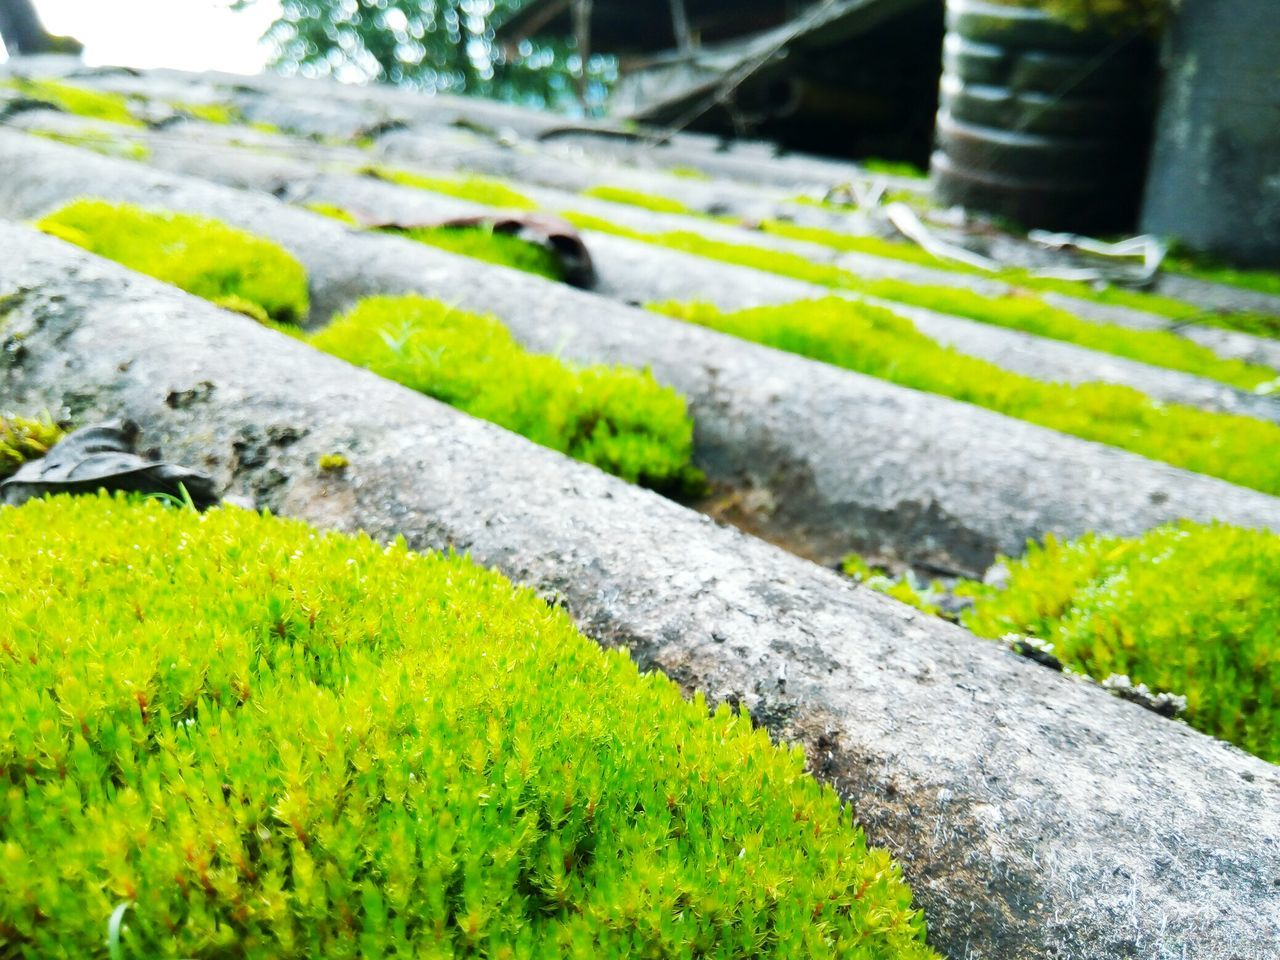 green color, day, no people, outdoors, nature, growth, moss, grass, water, close-up, beauty in nature